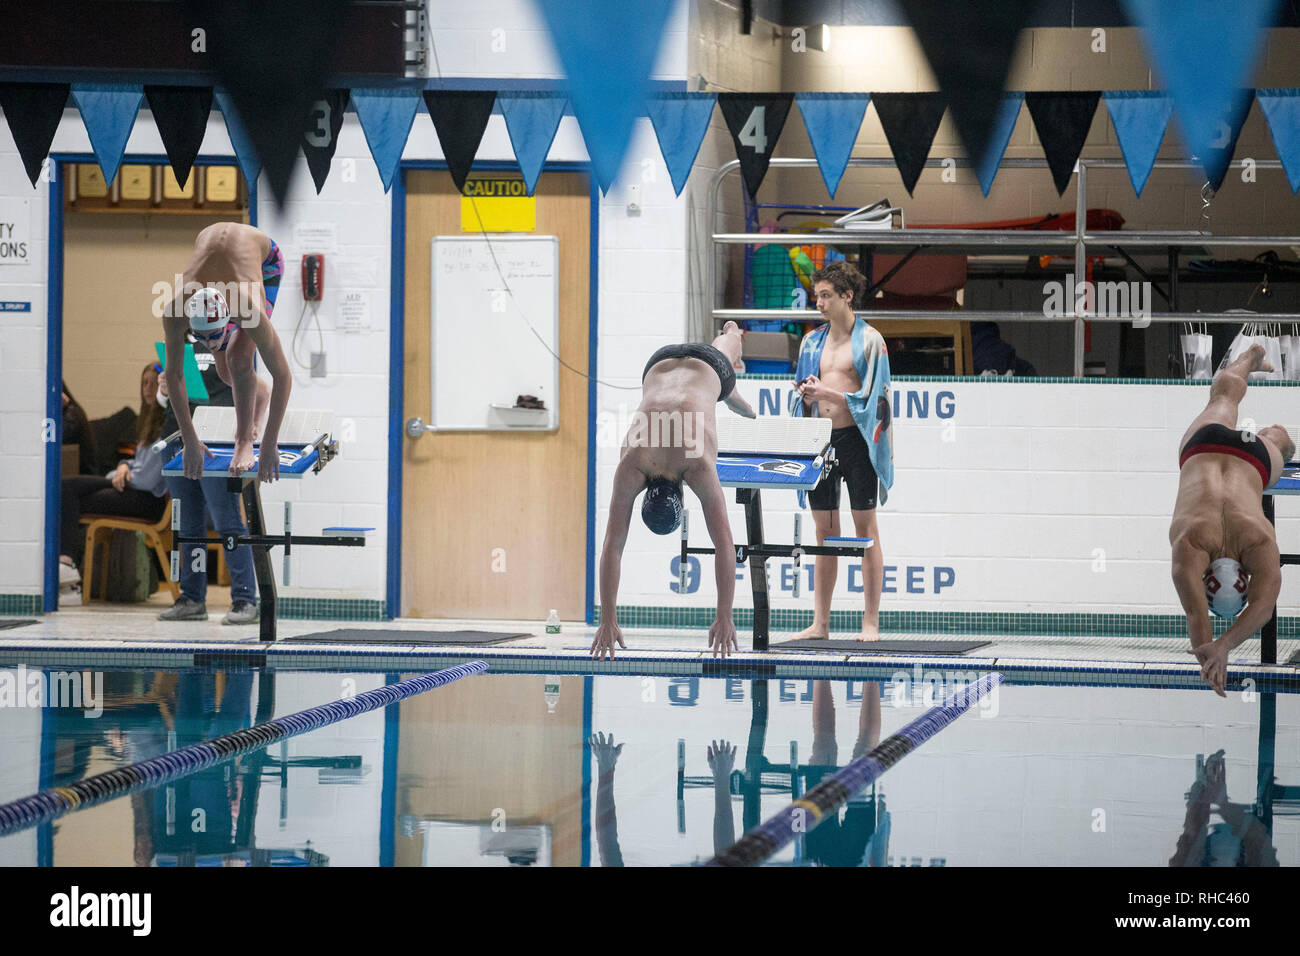 Swimmers at the start of a high school swim meet - Stock Image